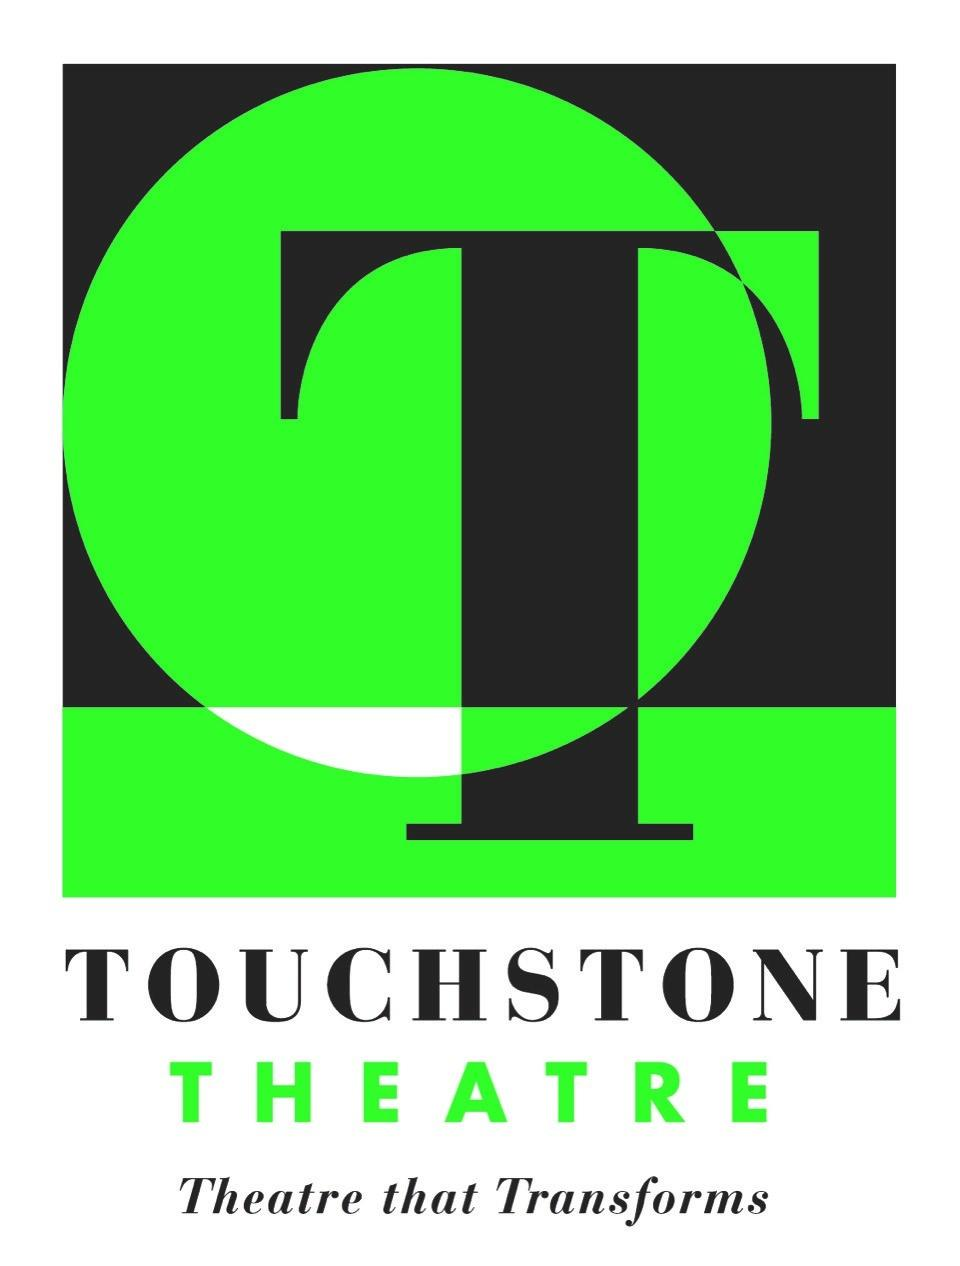 Touchstone Theatre - Theatre that Transforms